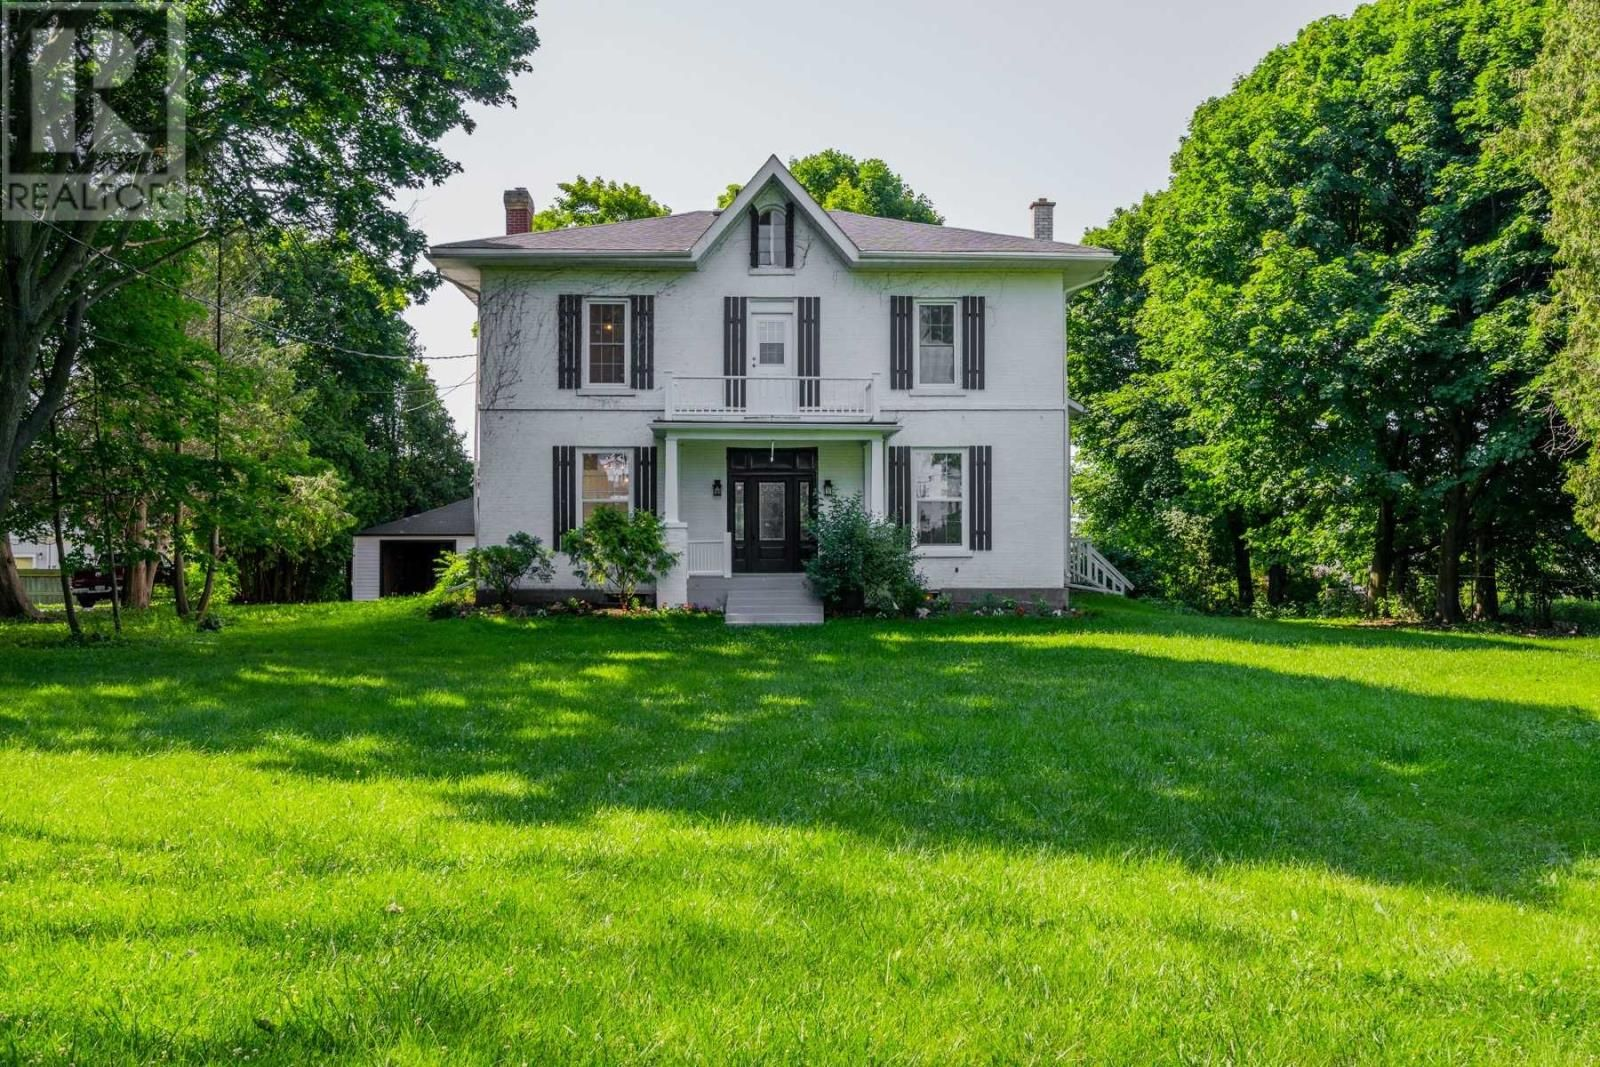 Main Photo: 7949 COUNTY RD 2 in Cobourg: House for sale : MLS®# X5323238